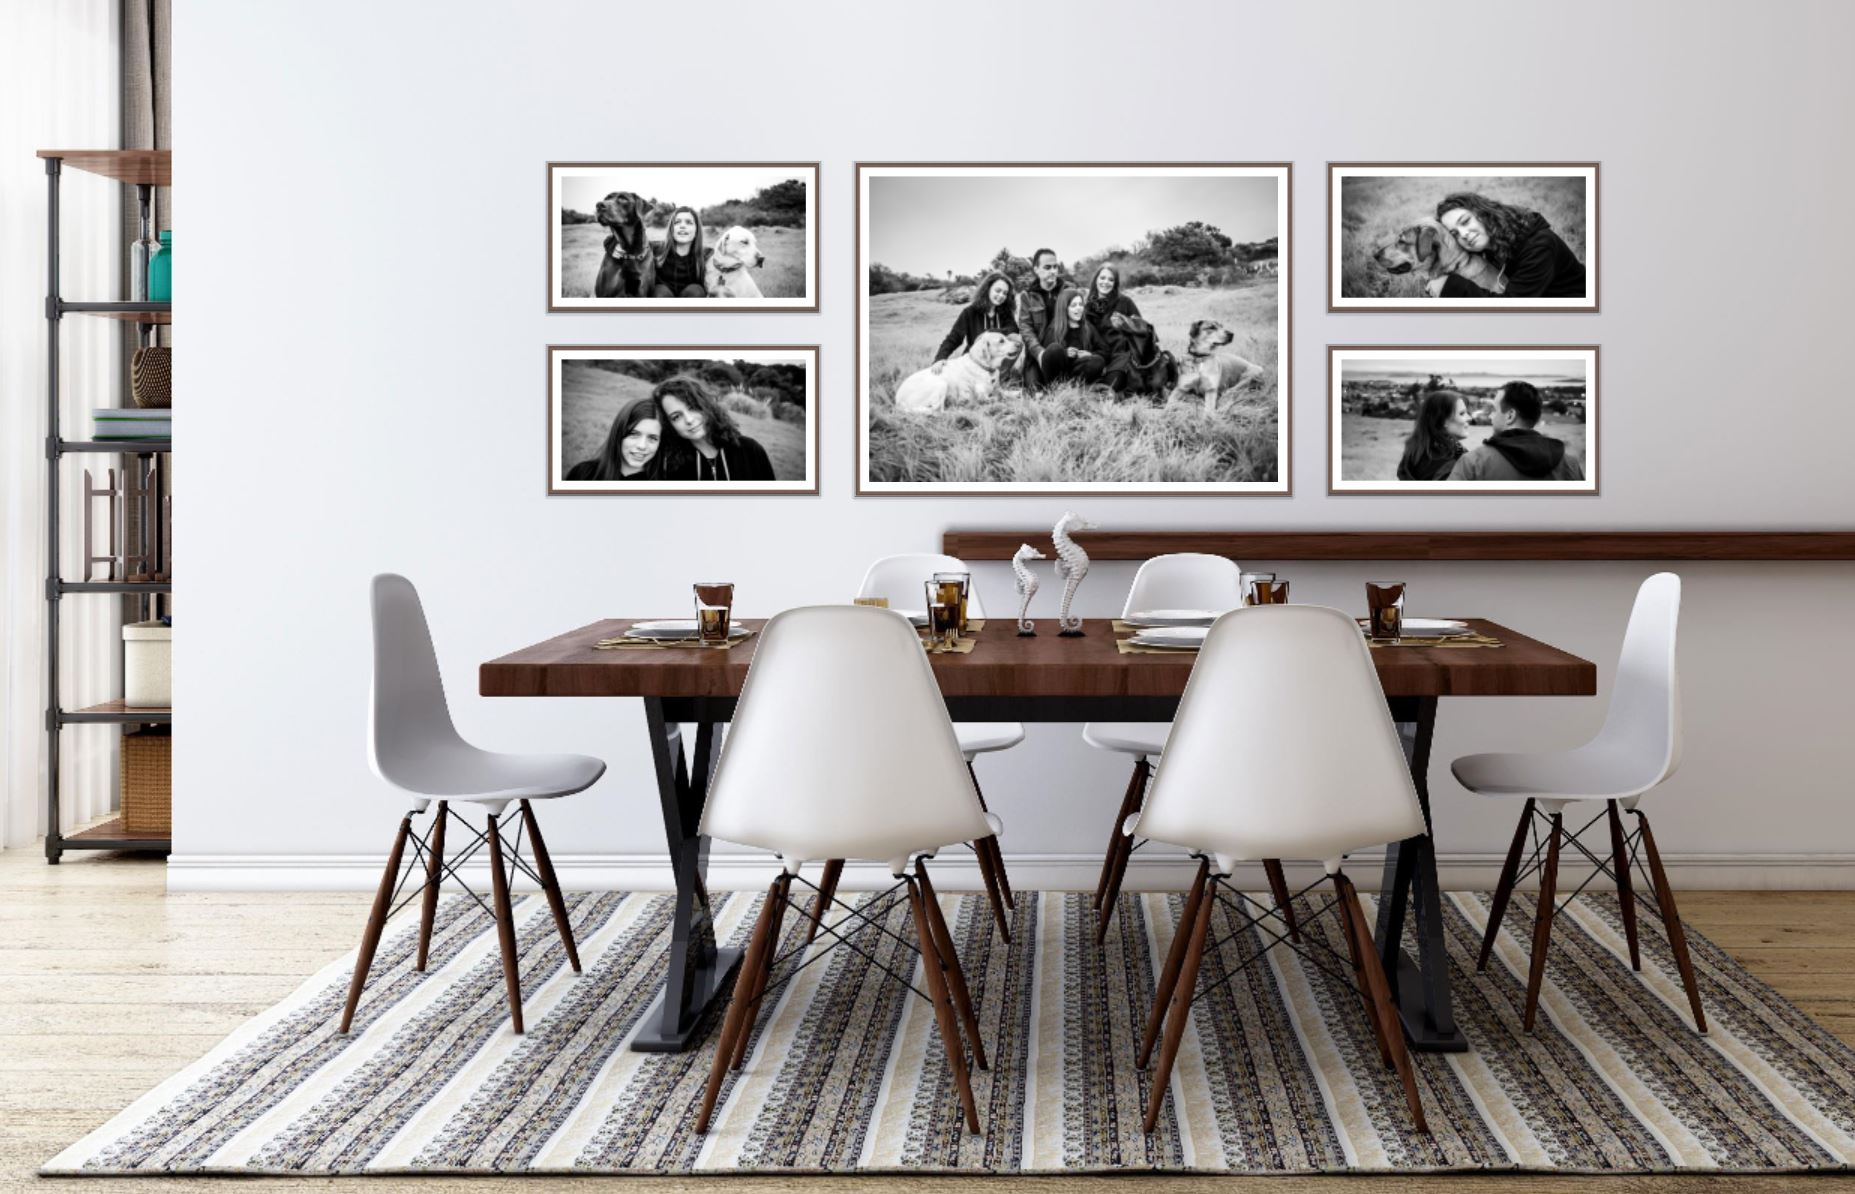 family photography wall grouping of framed photographs